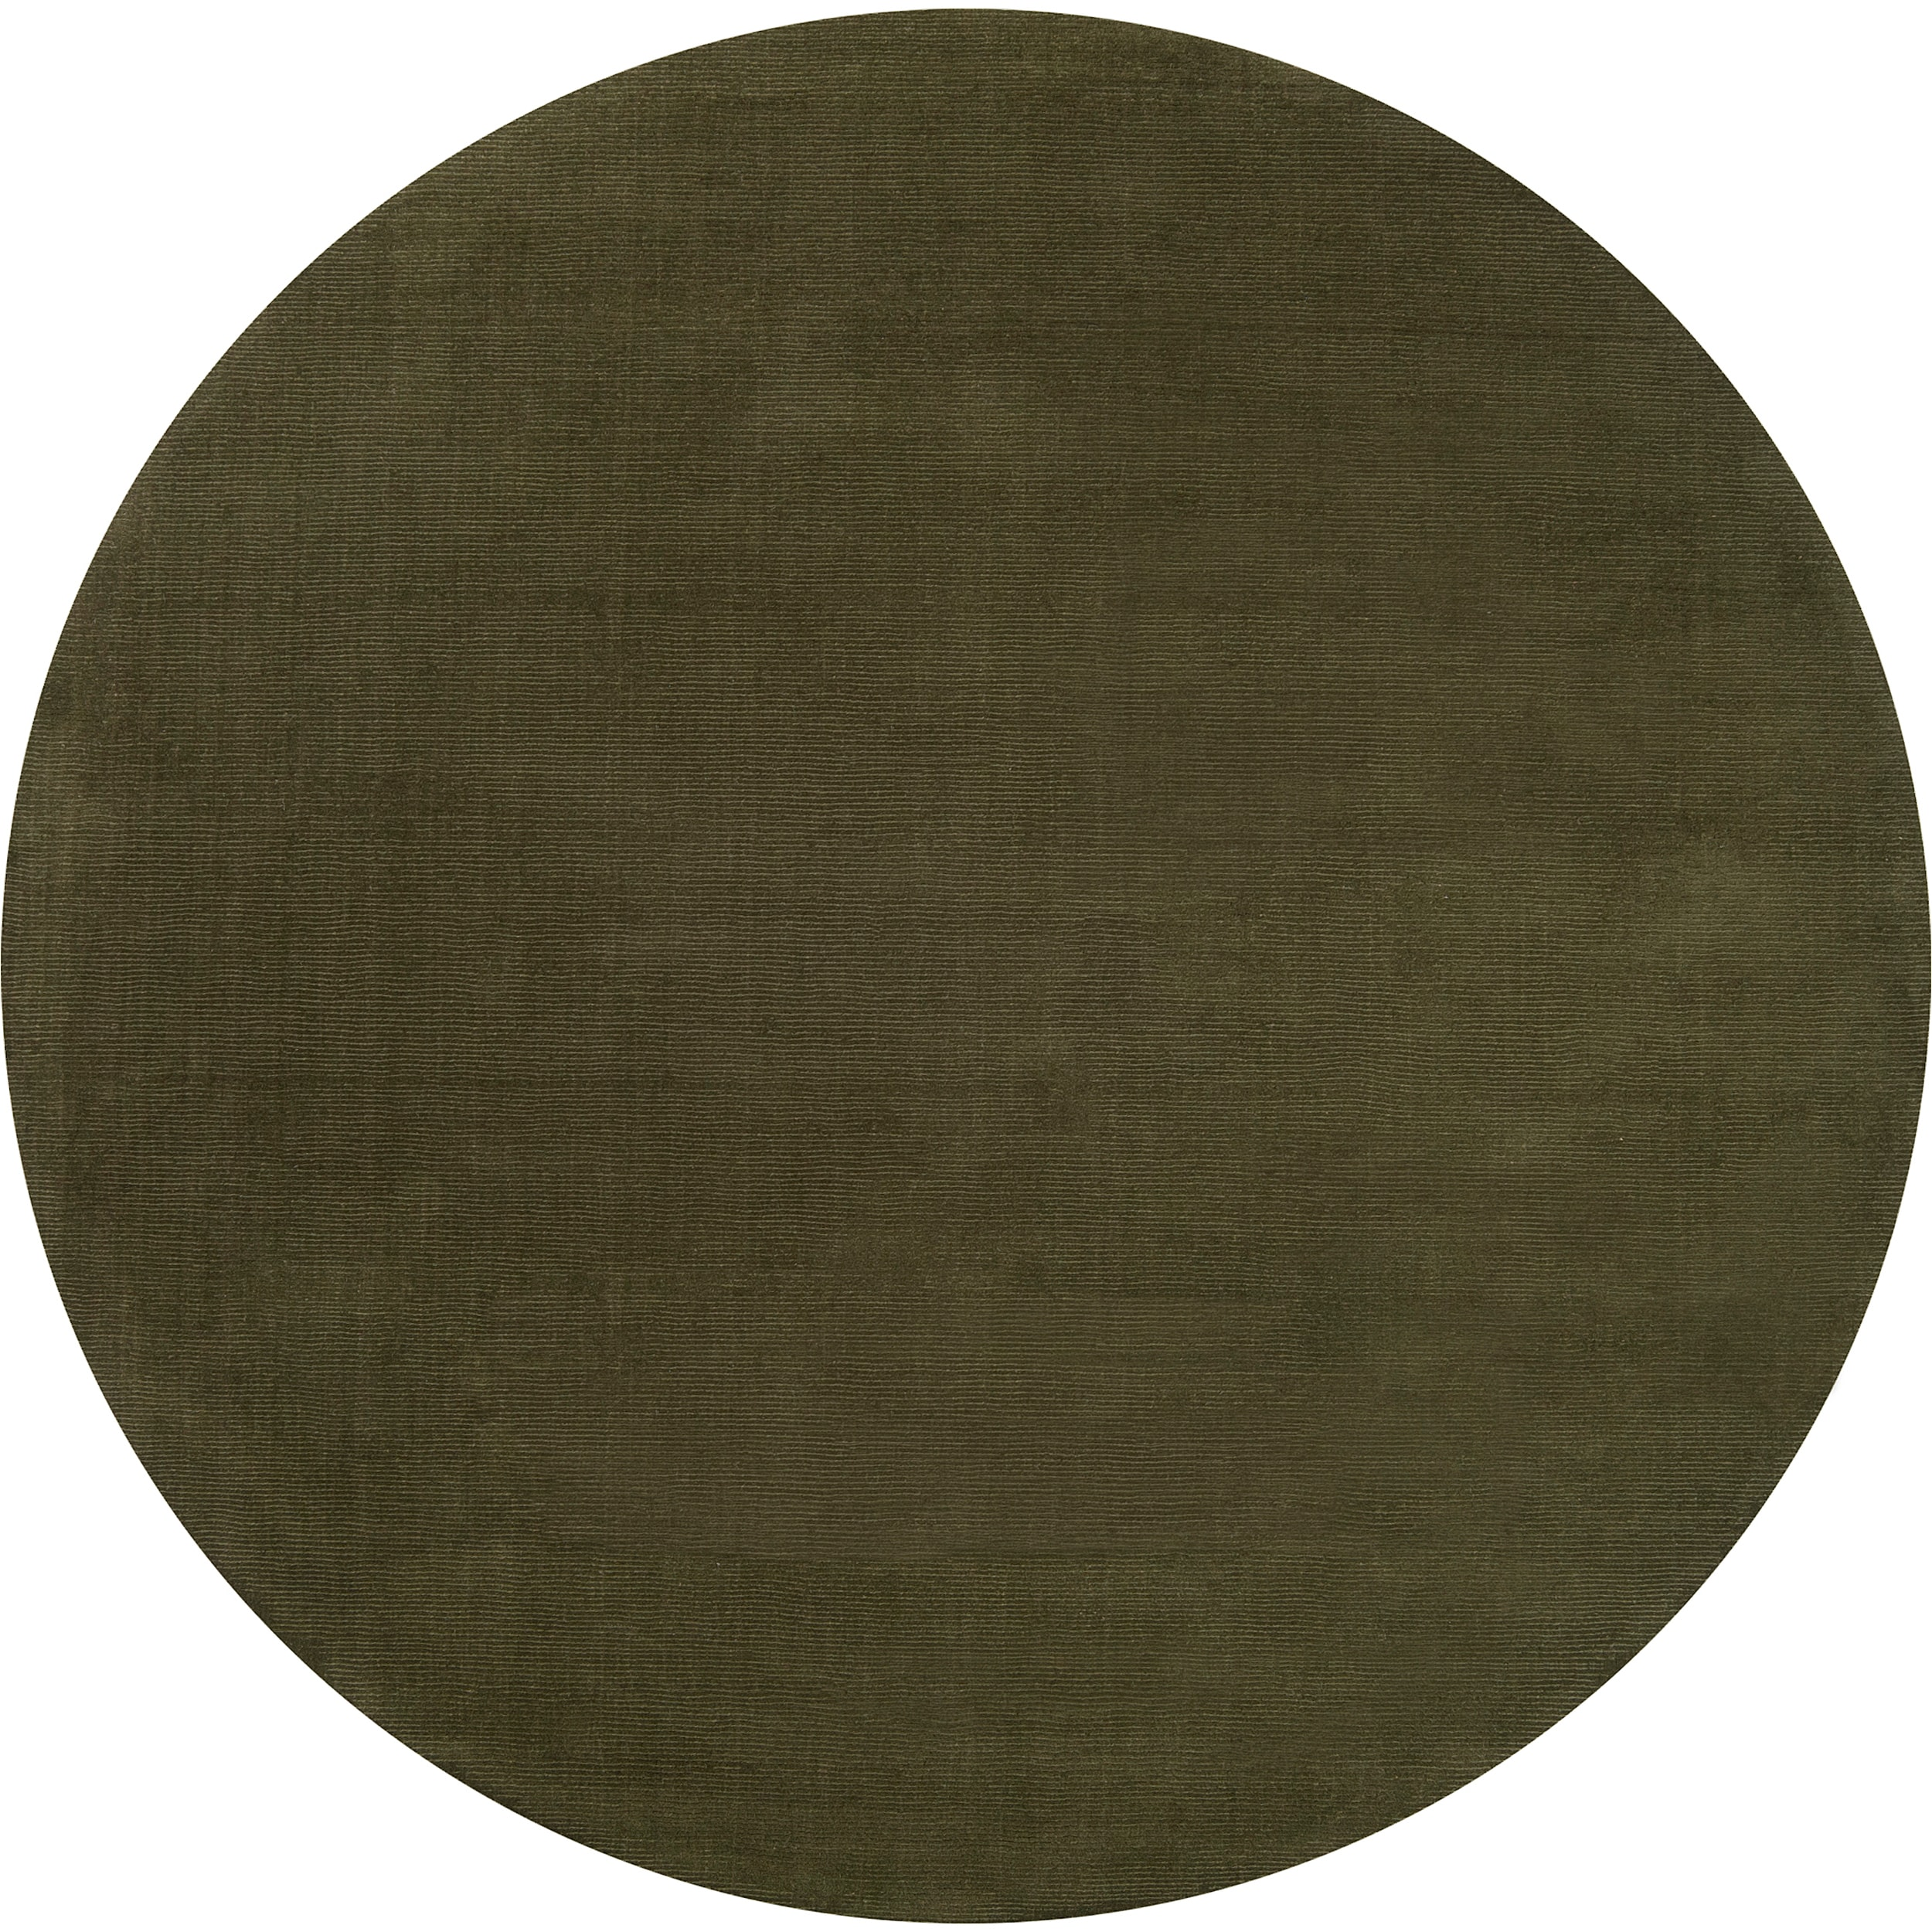 Hand-crafted Solid Dark Green Tone-On-Tone Bordered Dermato Wool Rug (6' Round)